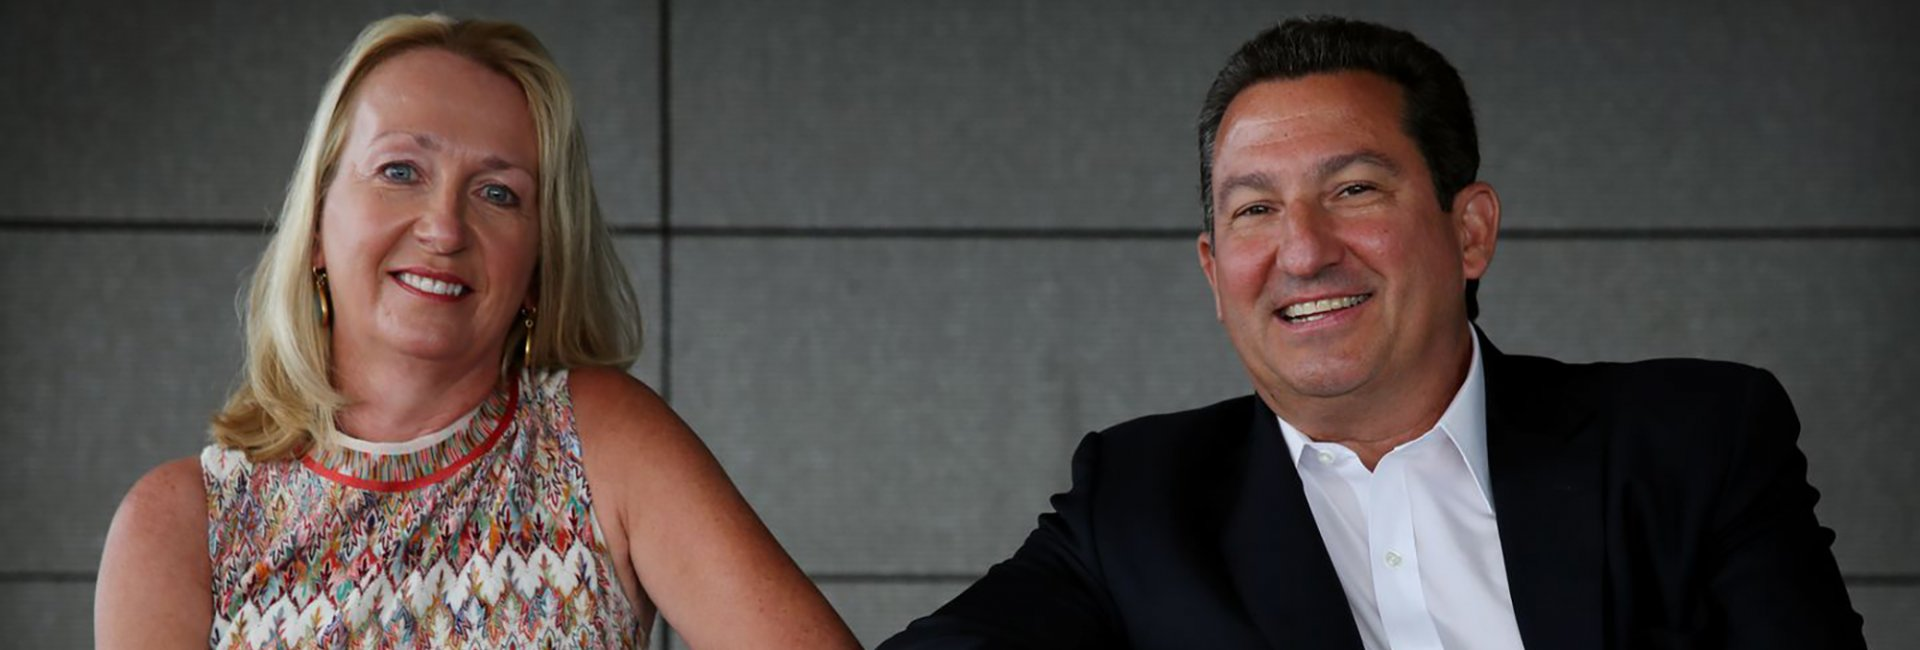 UMass Lowell alums Rob and Donna Manning make largest donation in UMass history to the UMass system.